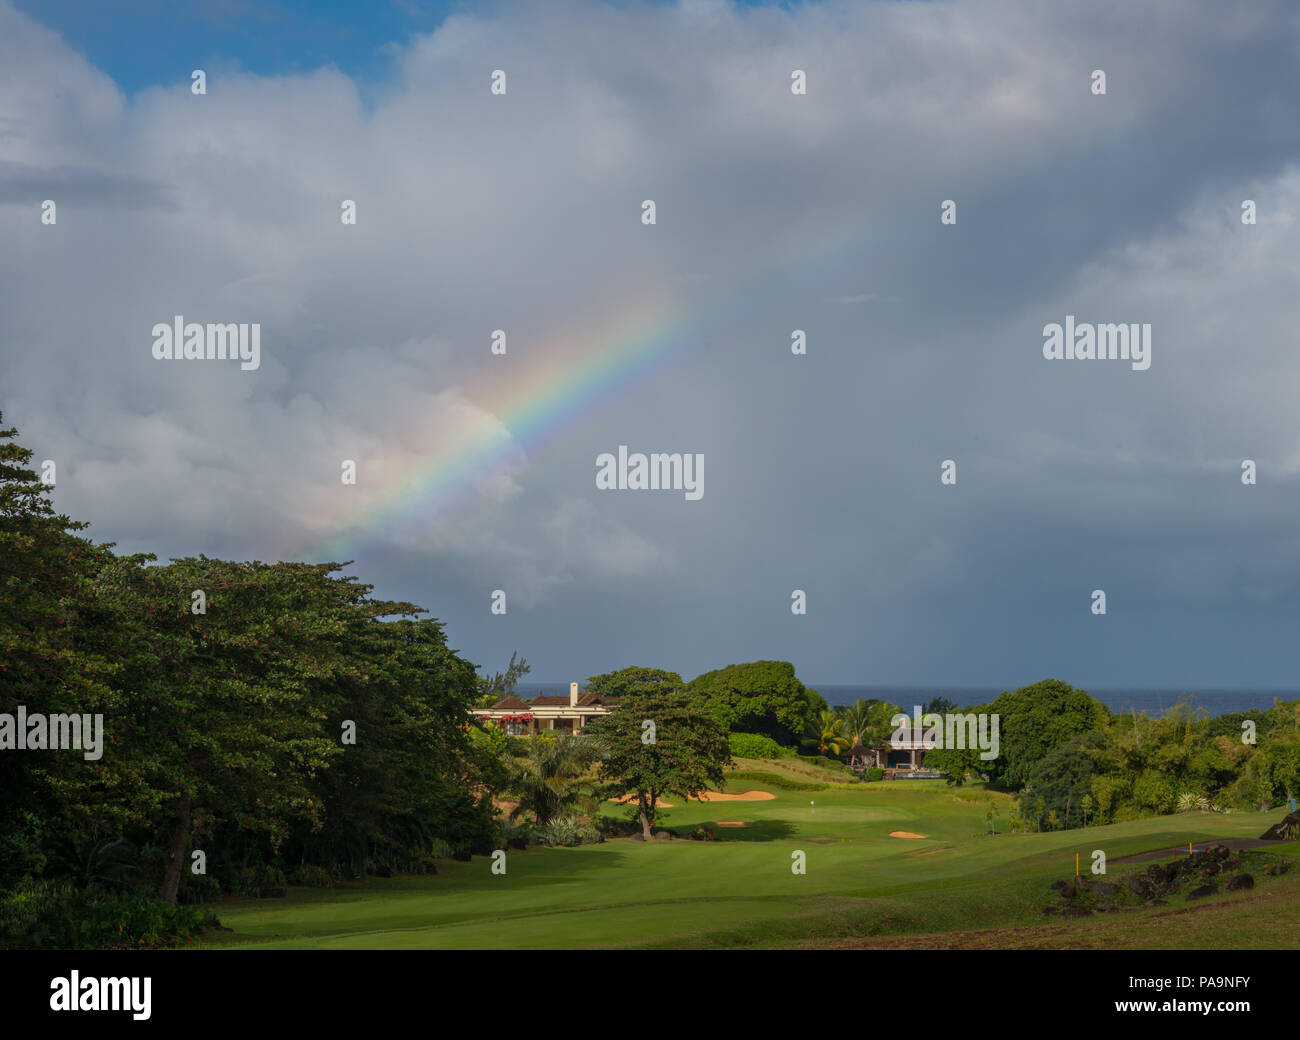 Rainbow over golf course in Mauritius - Stock Image